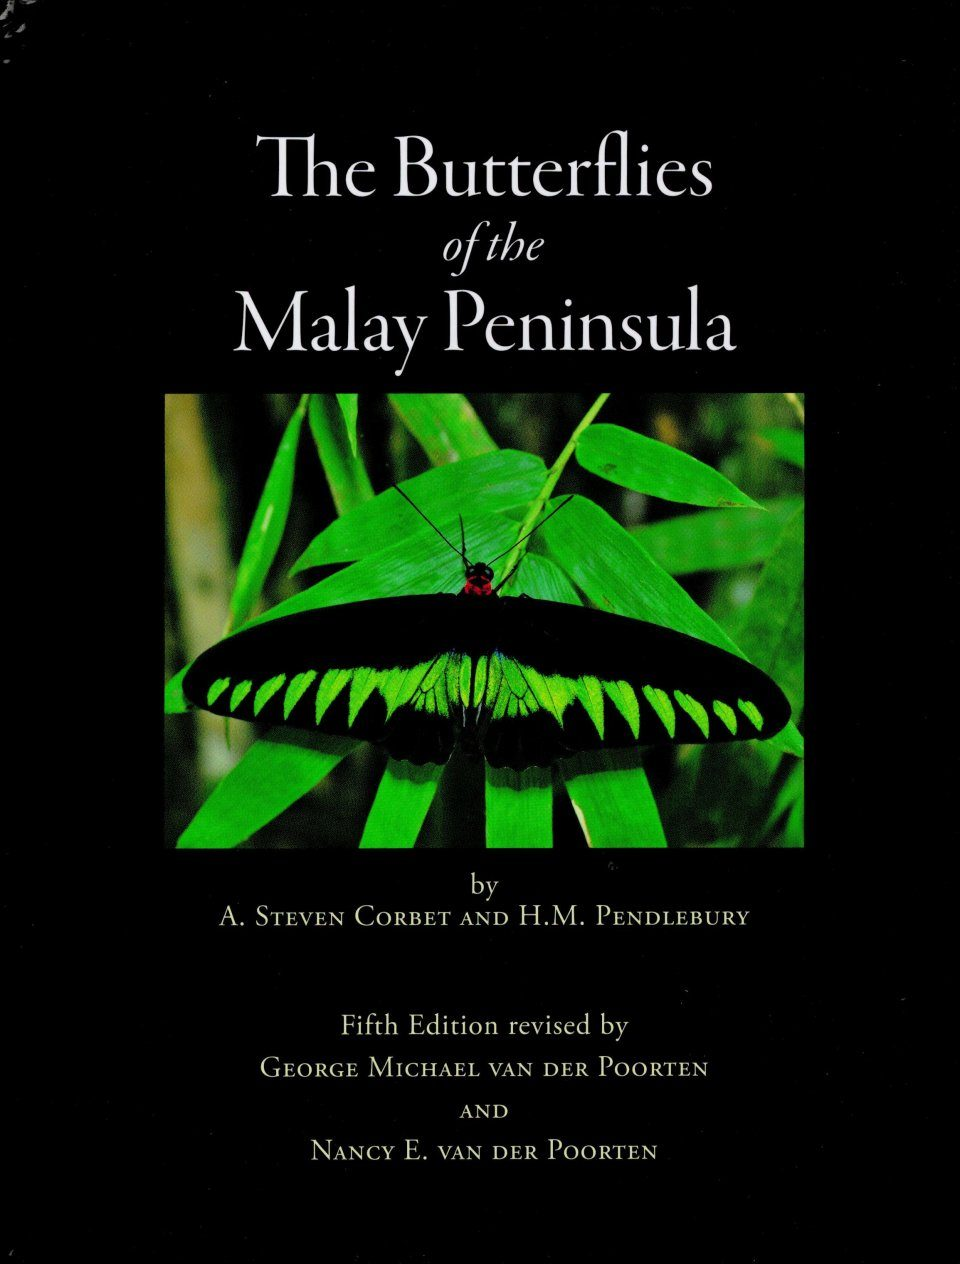 The Butterflies of the Malay Peninsula